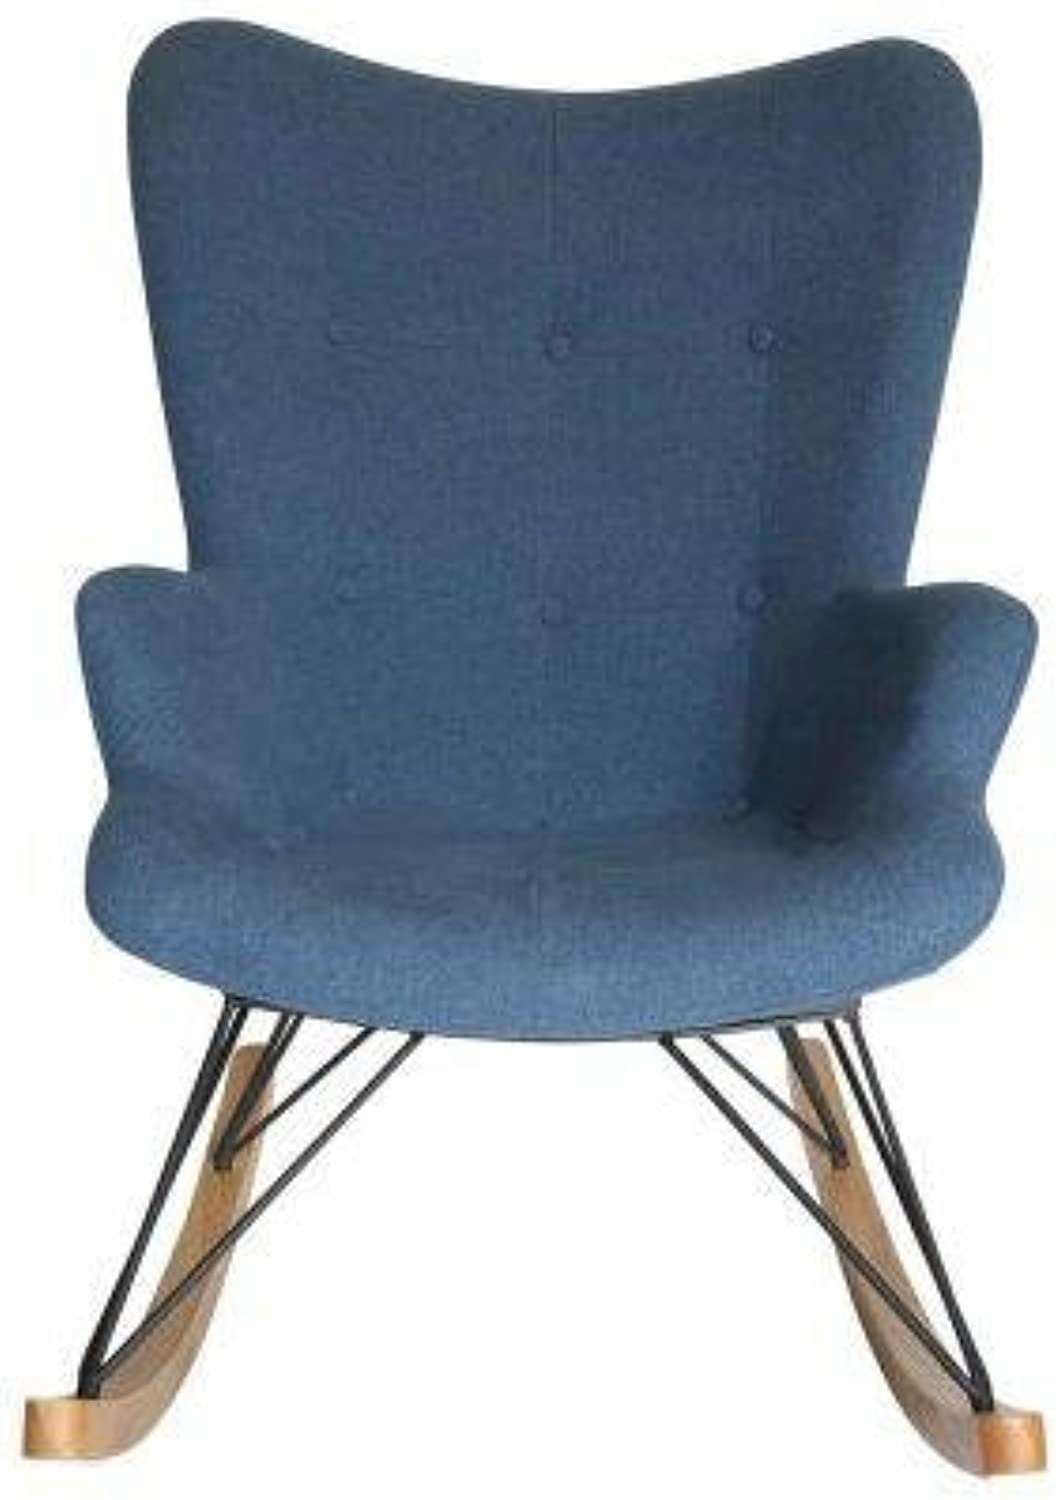 Replica Grant Featherston Lounge Rocking Chair - bluee